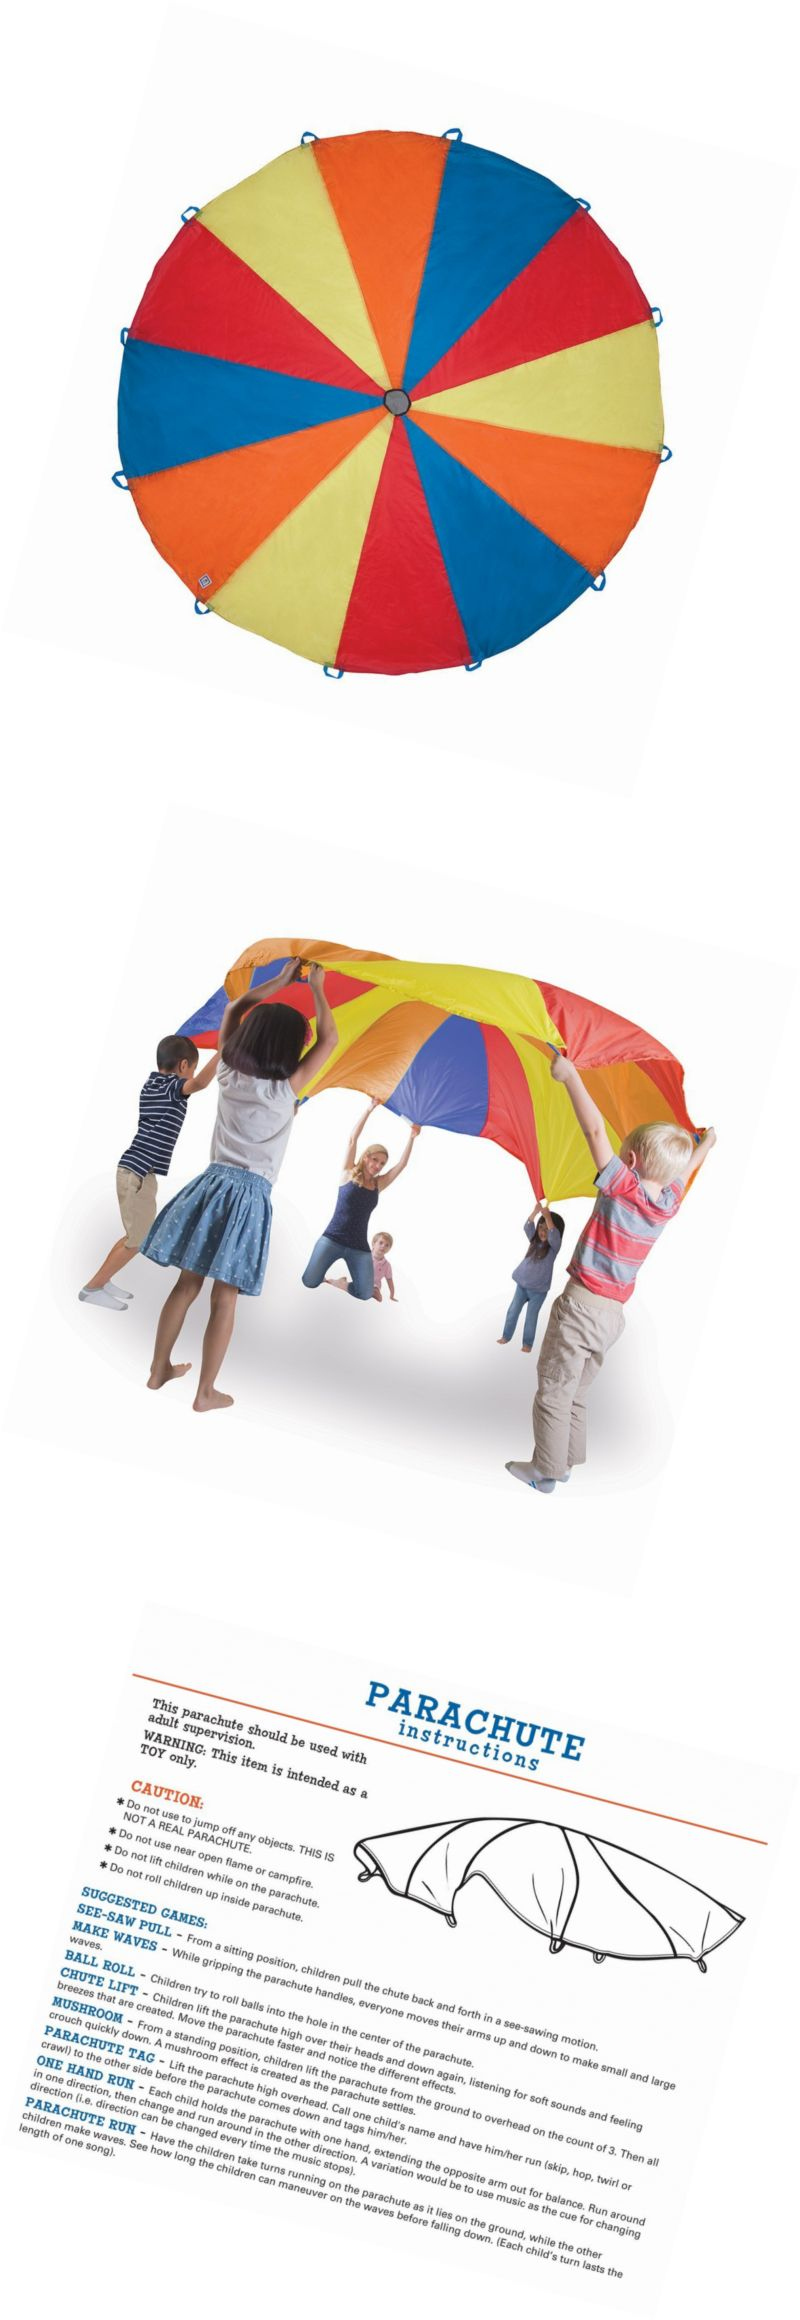 Parachutes 146000 Pacific Play Tents Kids Playchute Ii 10 Foot Parachute For Indoor Outdoor Fun  sc 1 st  Pinterest & Parachutes 146000: Pacific Play Tents Kids Playchute Ii 10 Foot ...